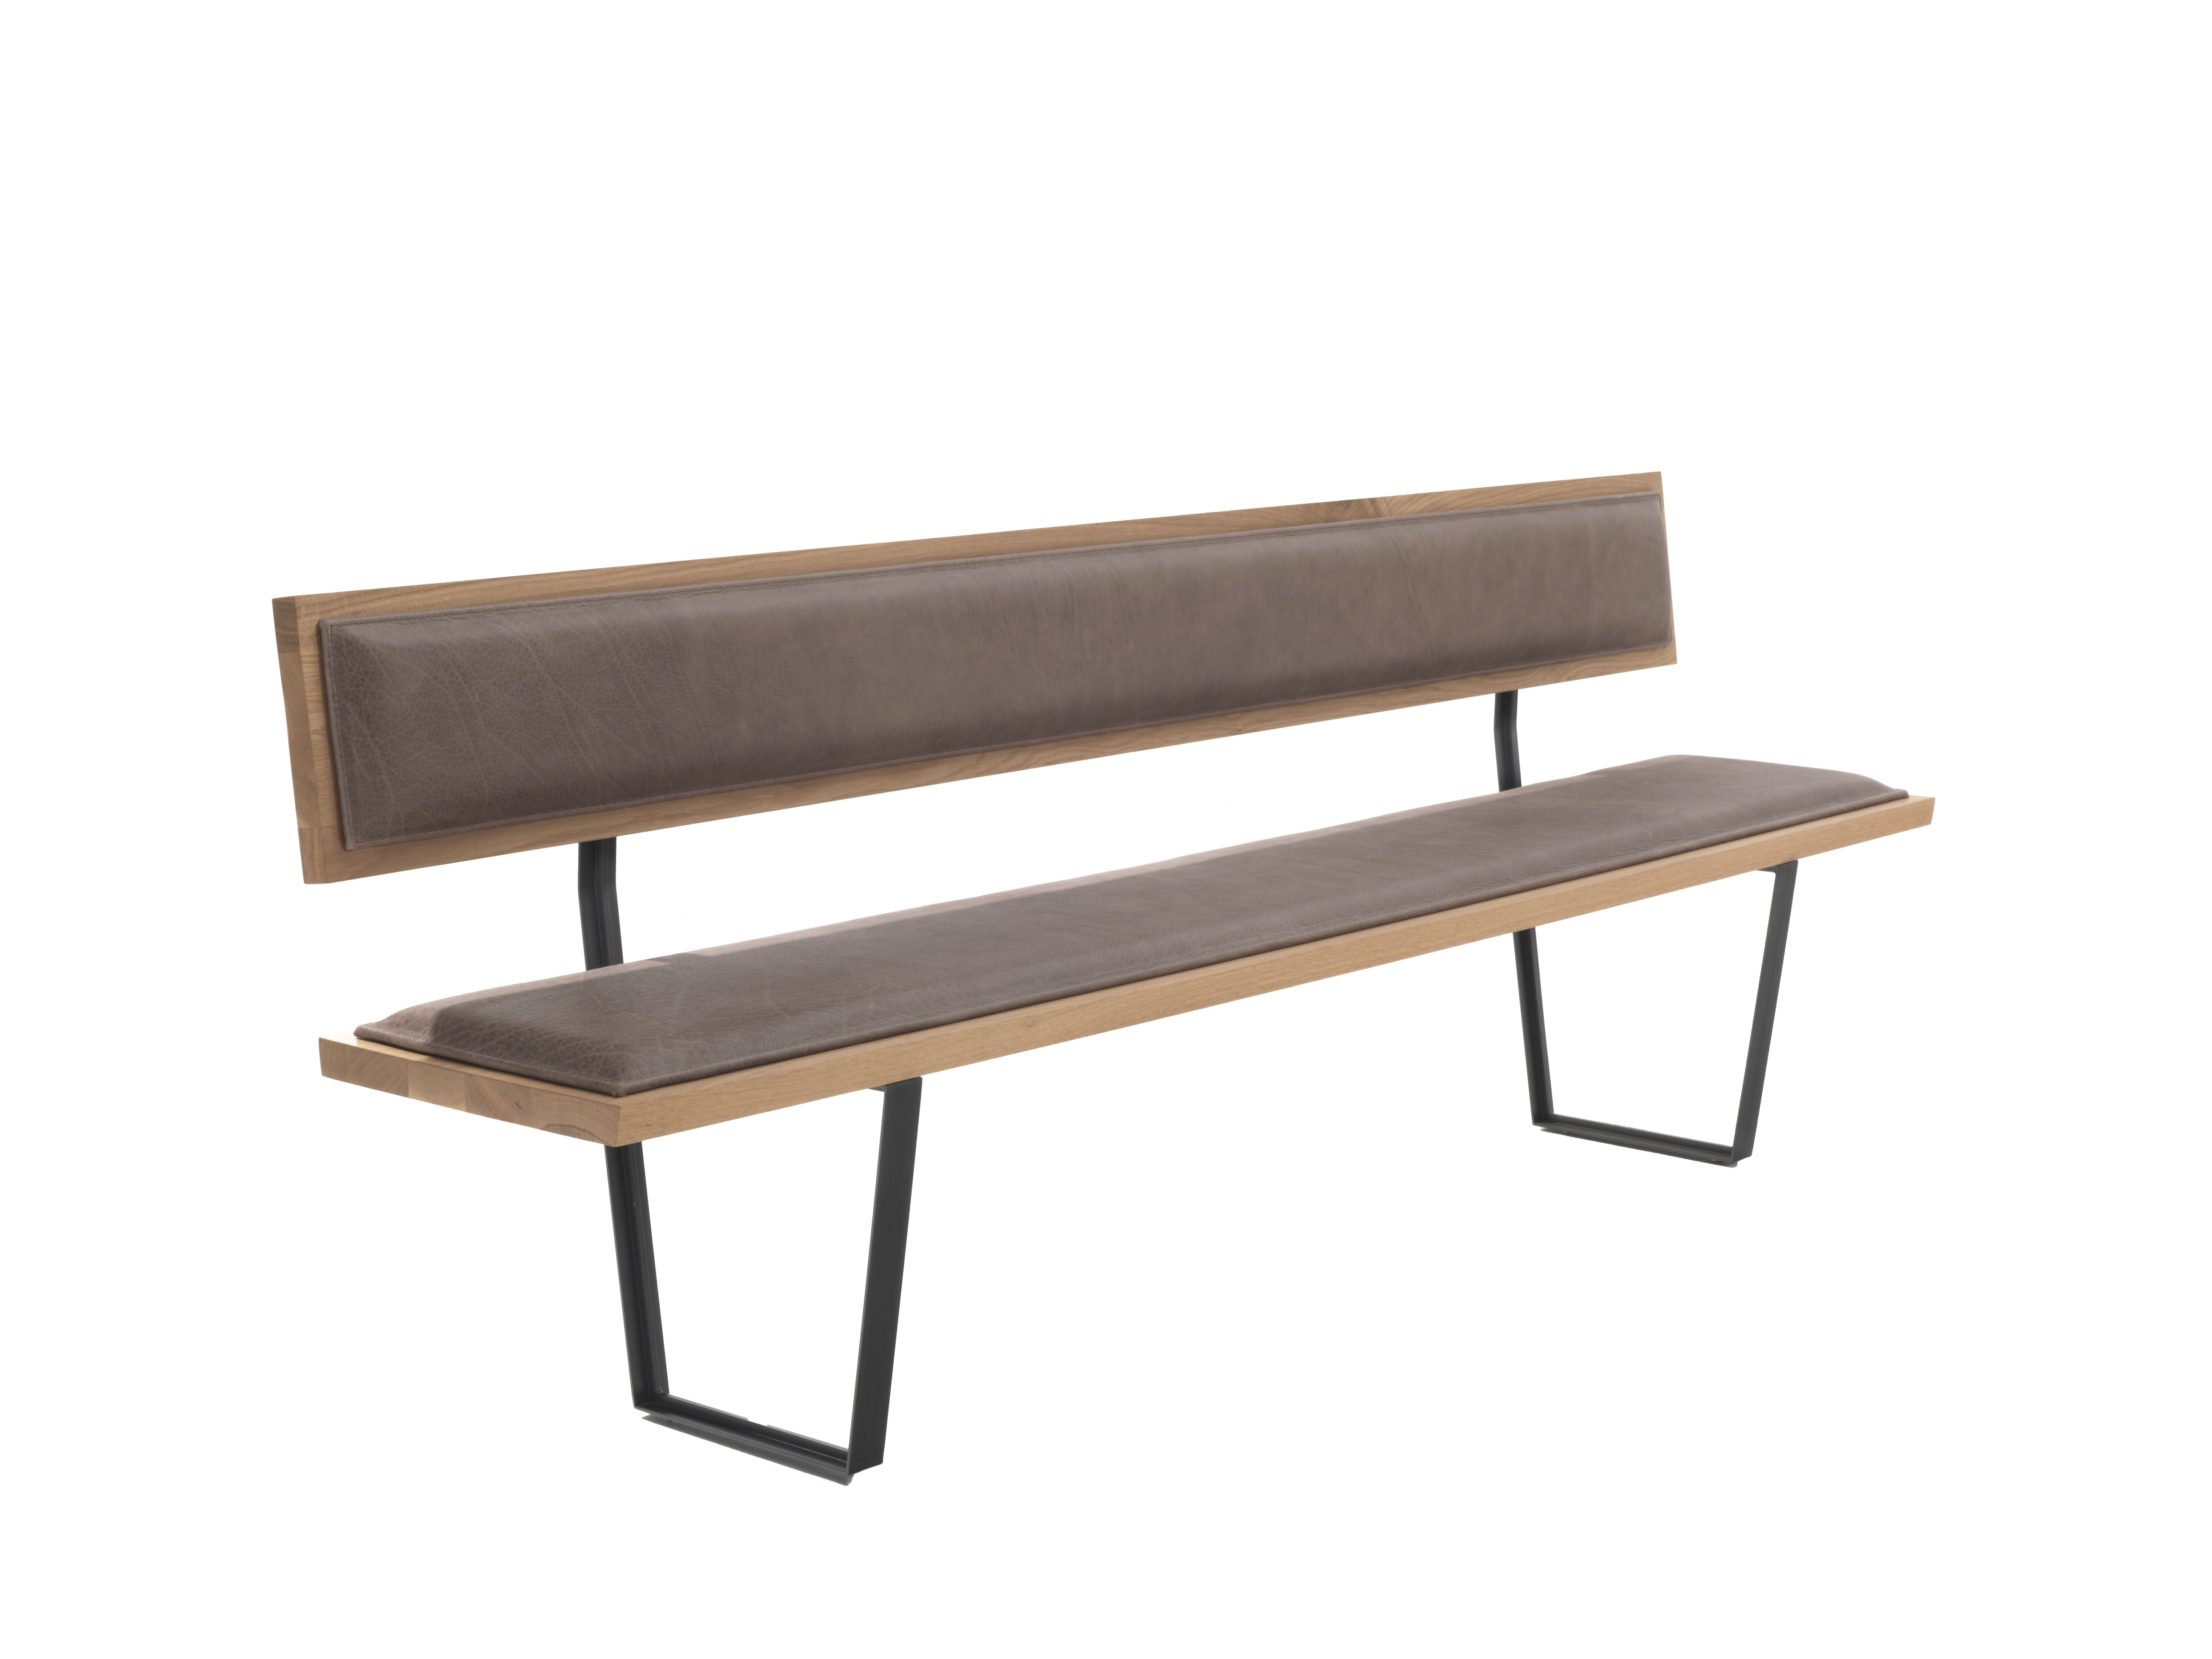 Pin By Soran Masoudi On Benches Bench Leather Bench Furniture